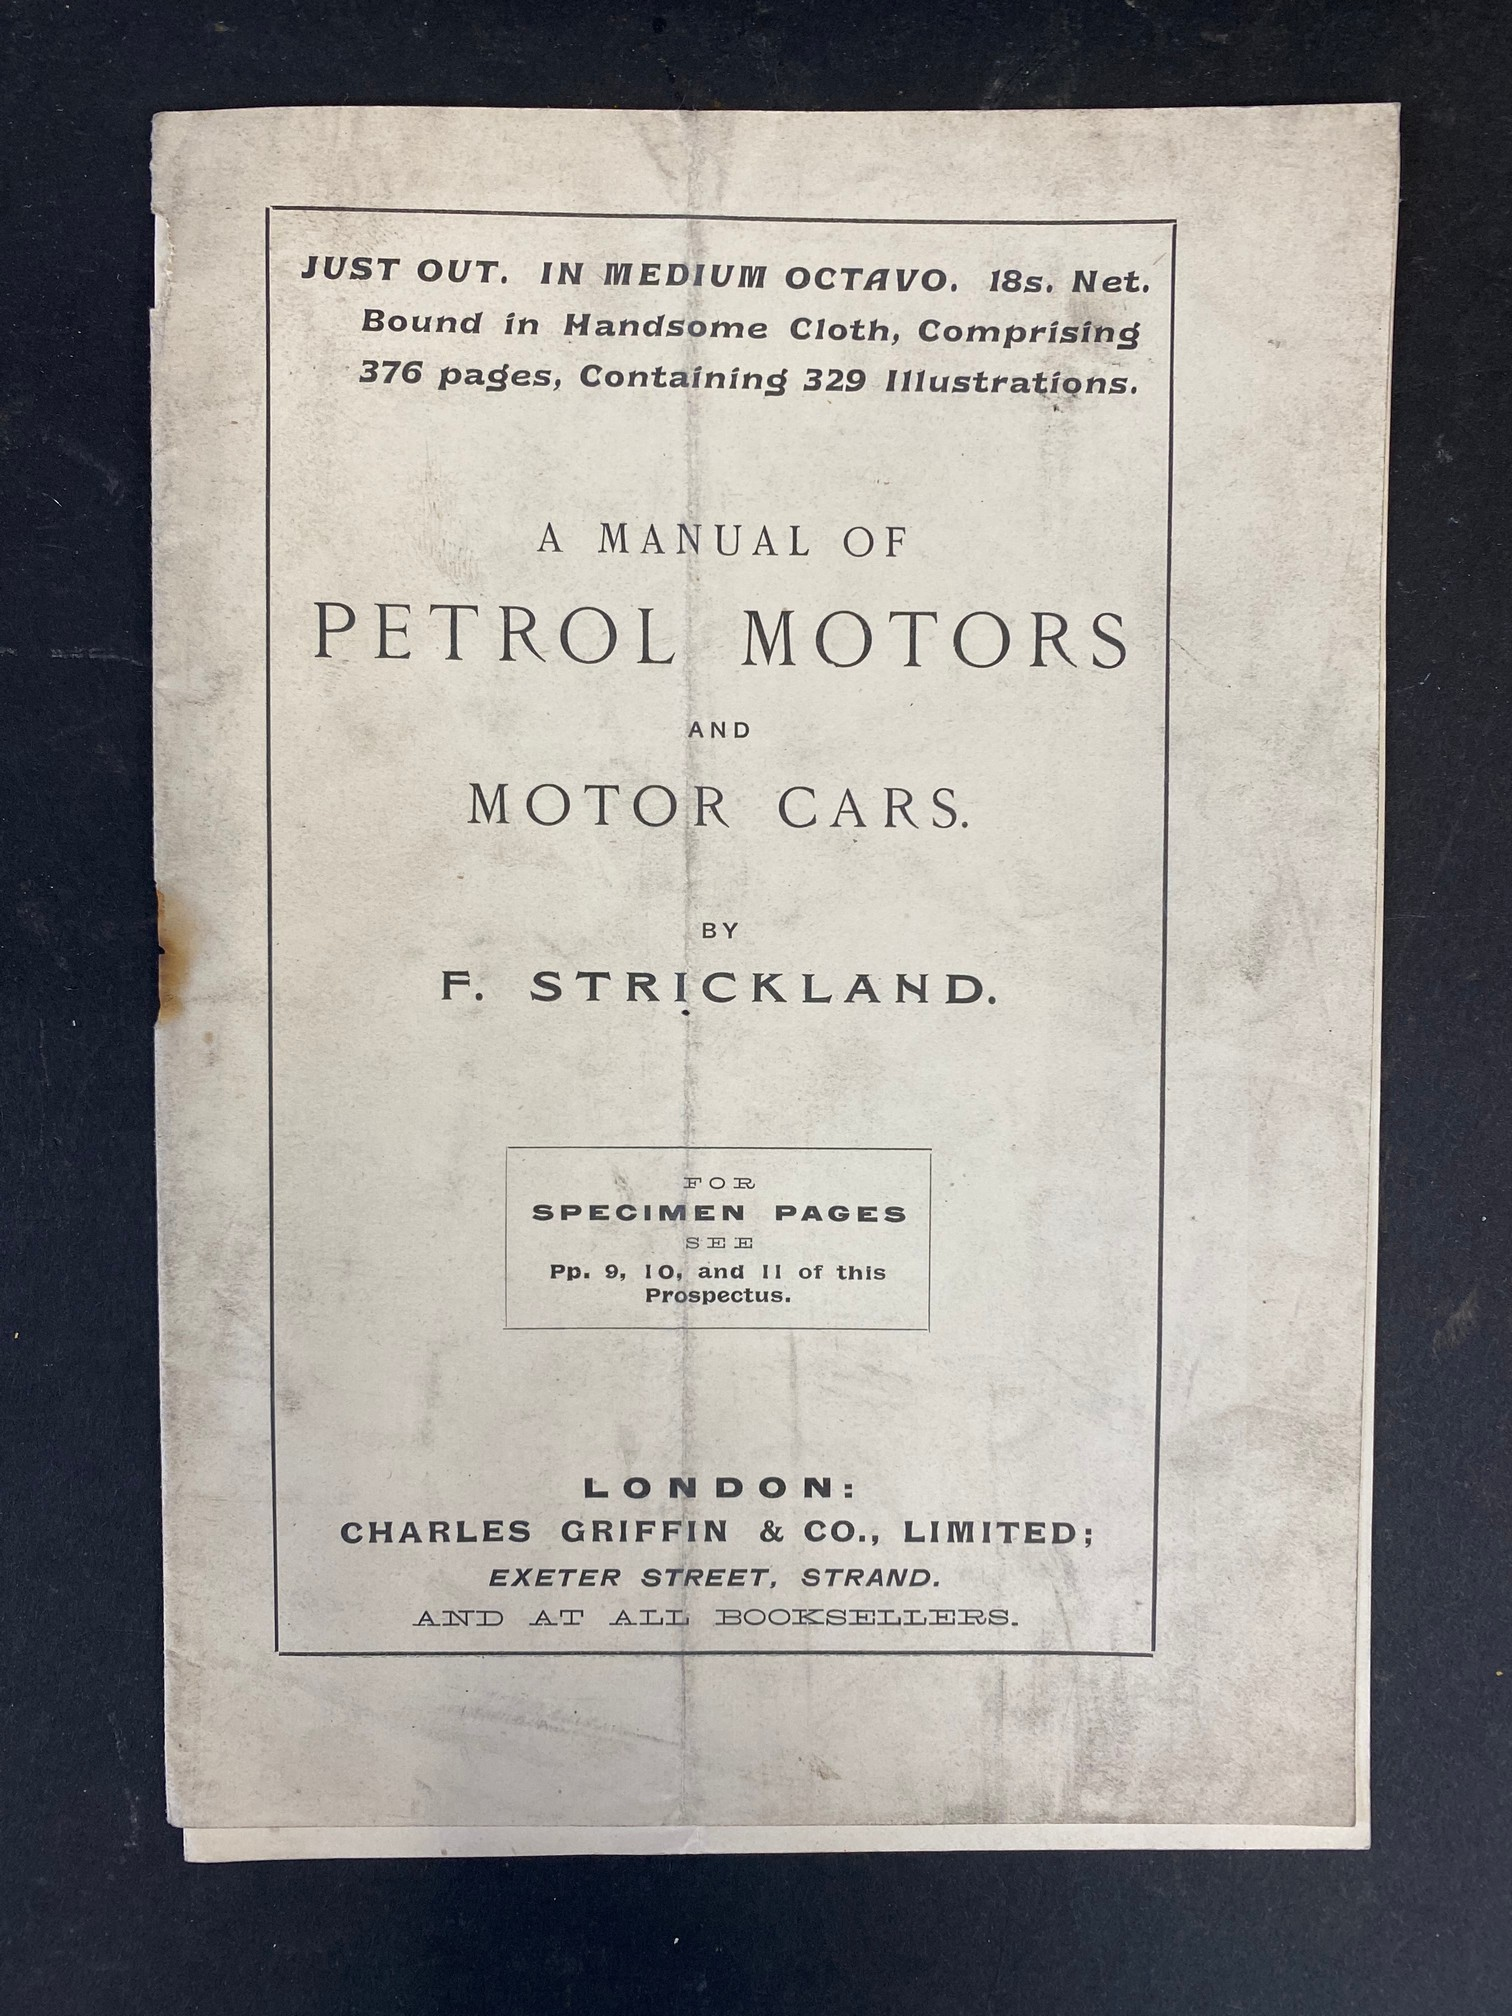 A 1907 Manual of Petrol Motors and Motor Cars by F. Strickland.